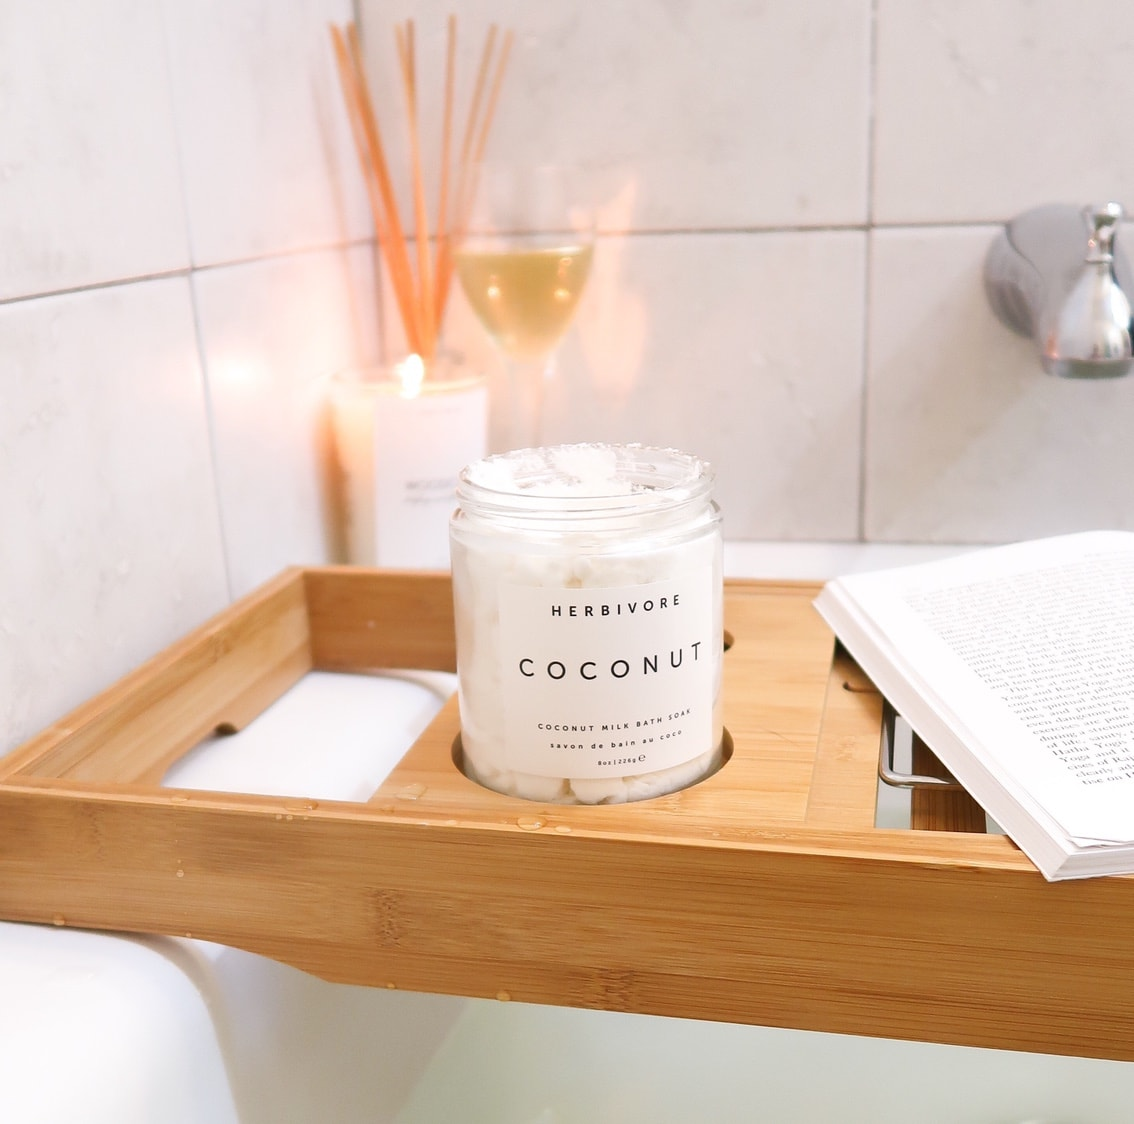 2019 Mother's Day Gift Guide | Looking for the perfect gift your your mom that will last longer than a boquet of flowers? Herbivore's Coconut Milk Bath Milk, is Vegan, Cruelty-Free, and perfect for the mom in need on a relaxing at-home spa night. Adding Herbivore's Coconut Soak to your bath will make your skin hydrated and smooth. These gifts are perfect for the mom who loves beauty or is in need of some extra self care or an at-home spa night.